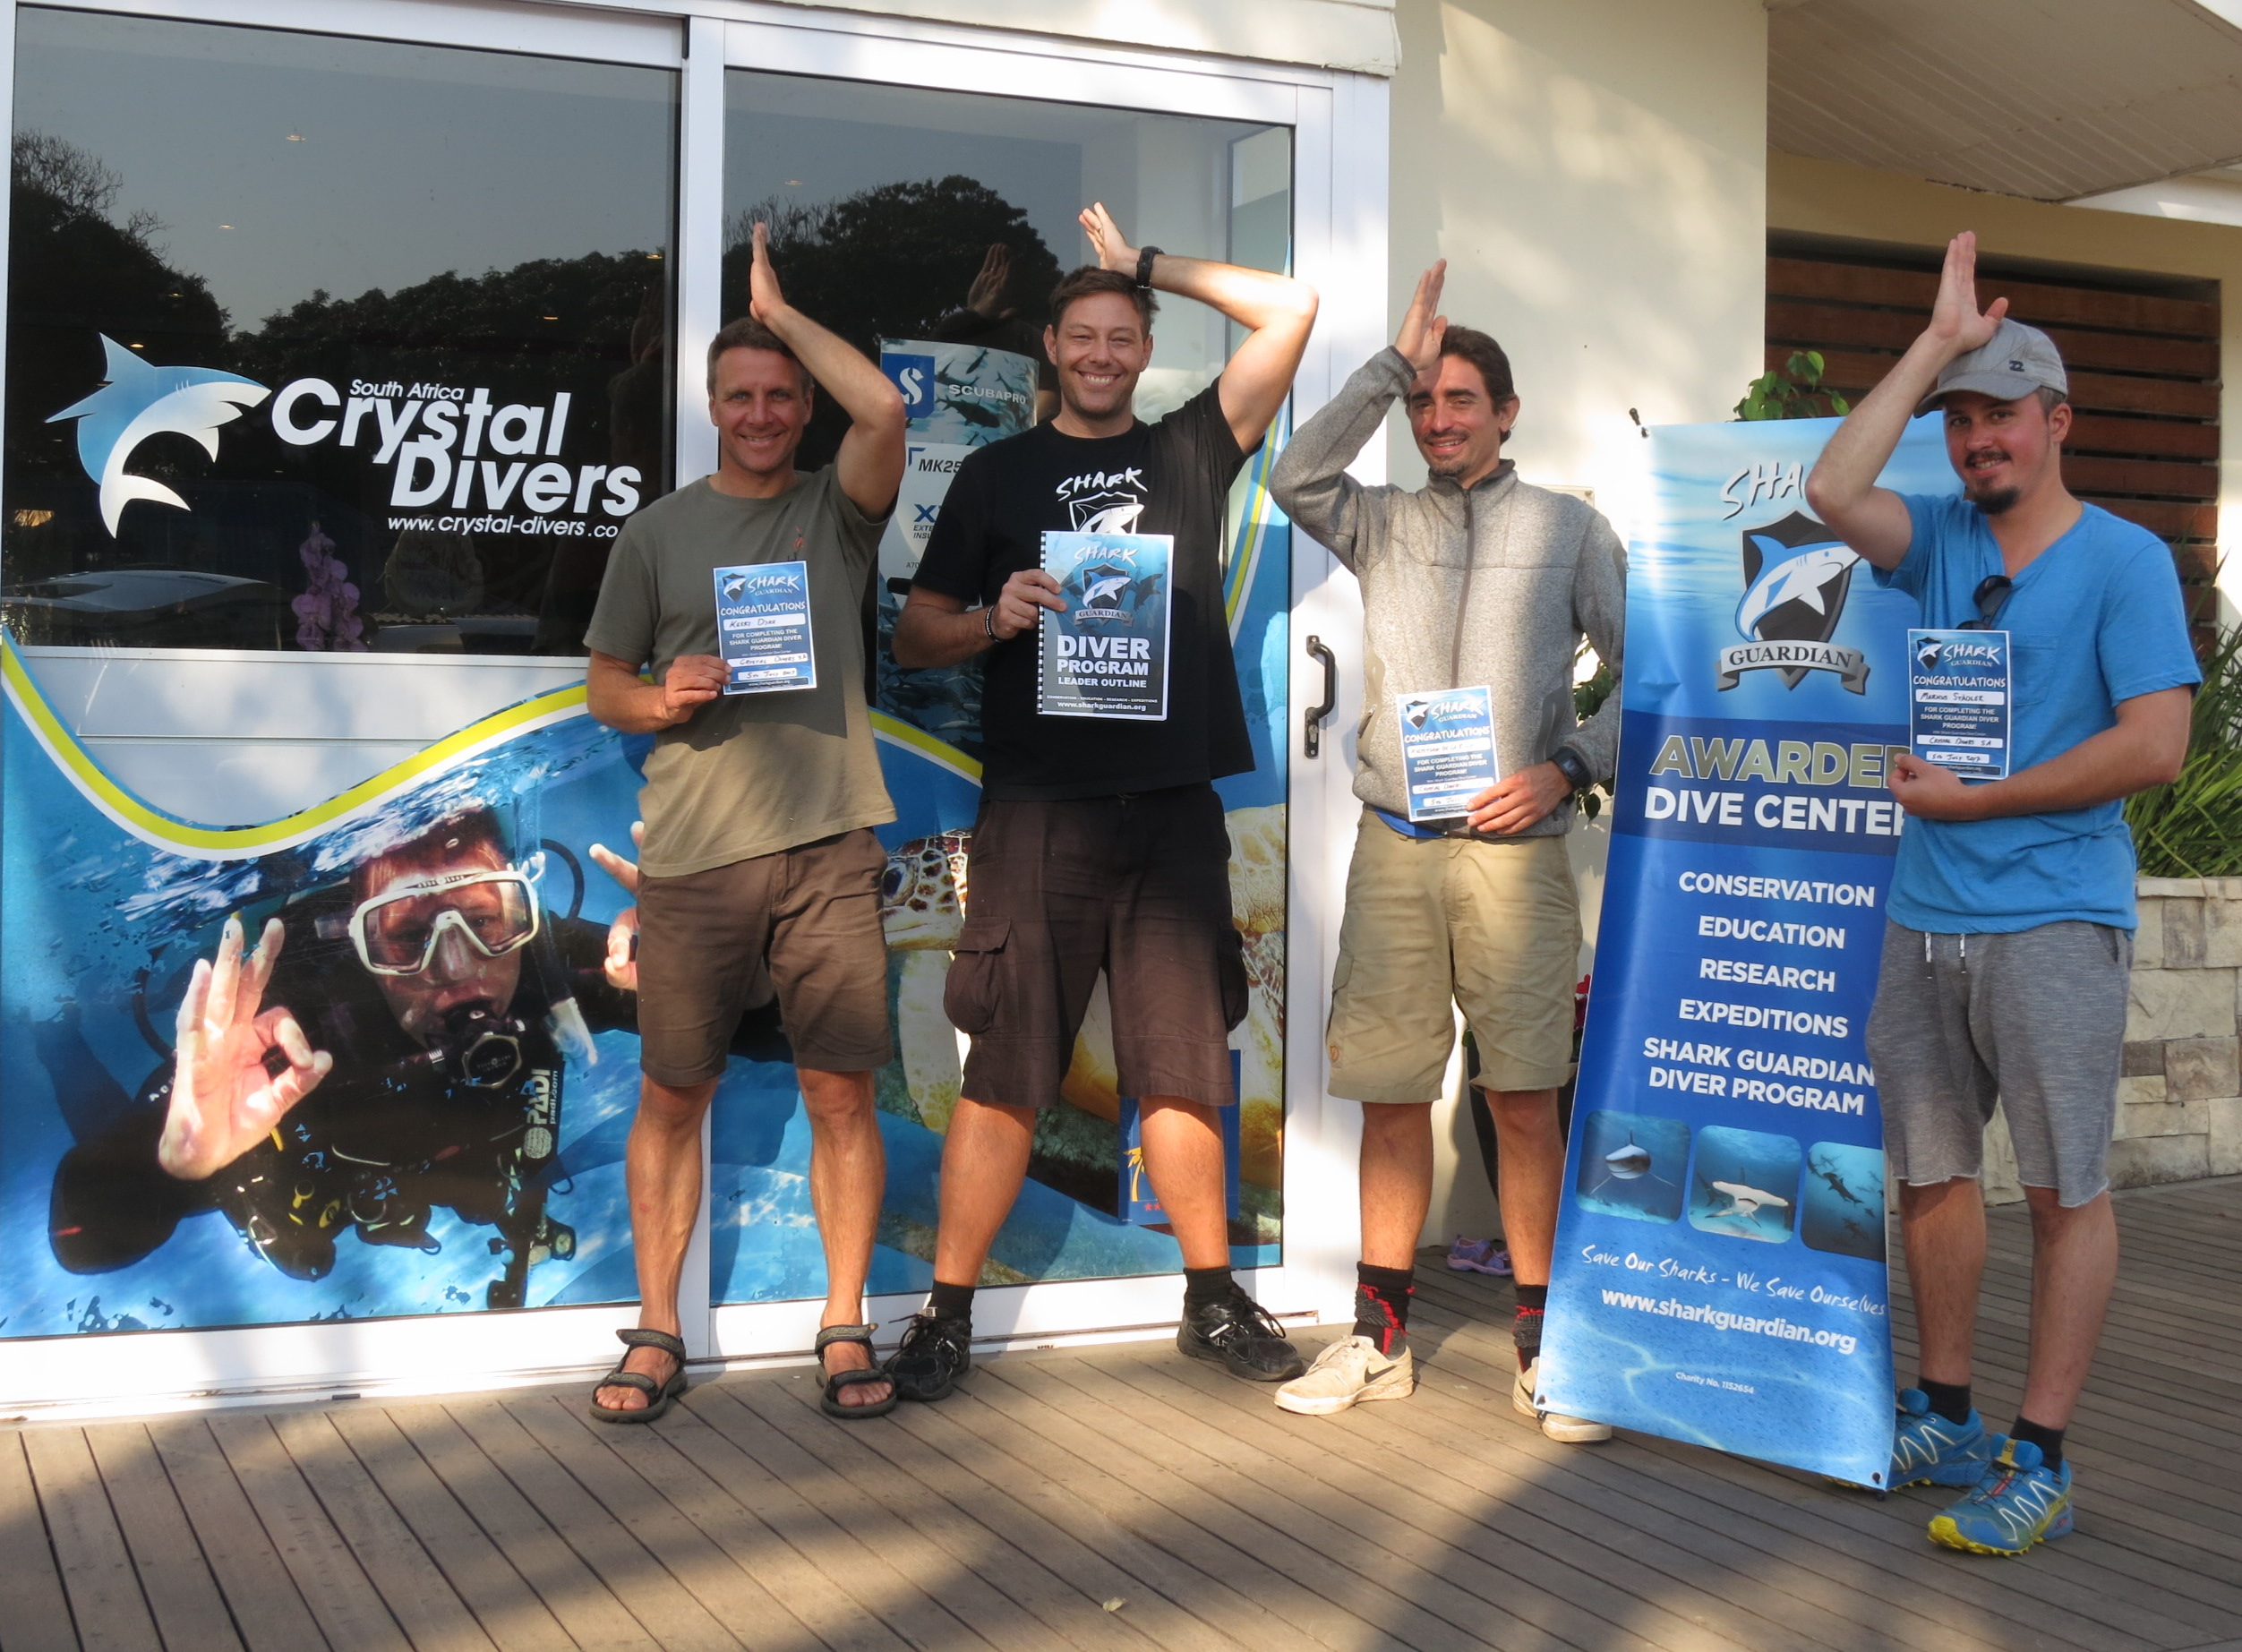 Crystal Divers - South Africa